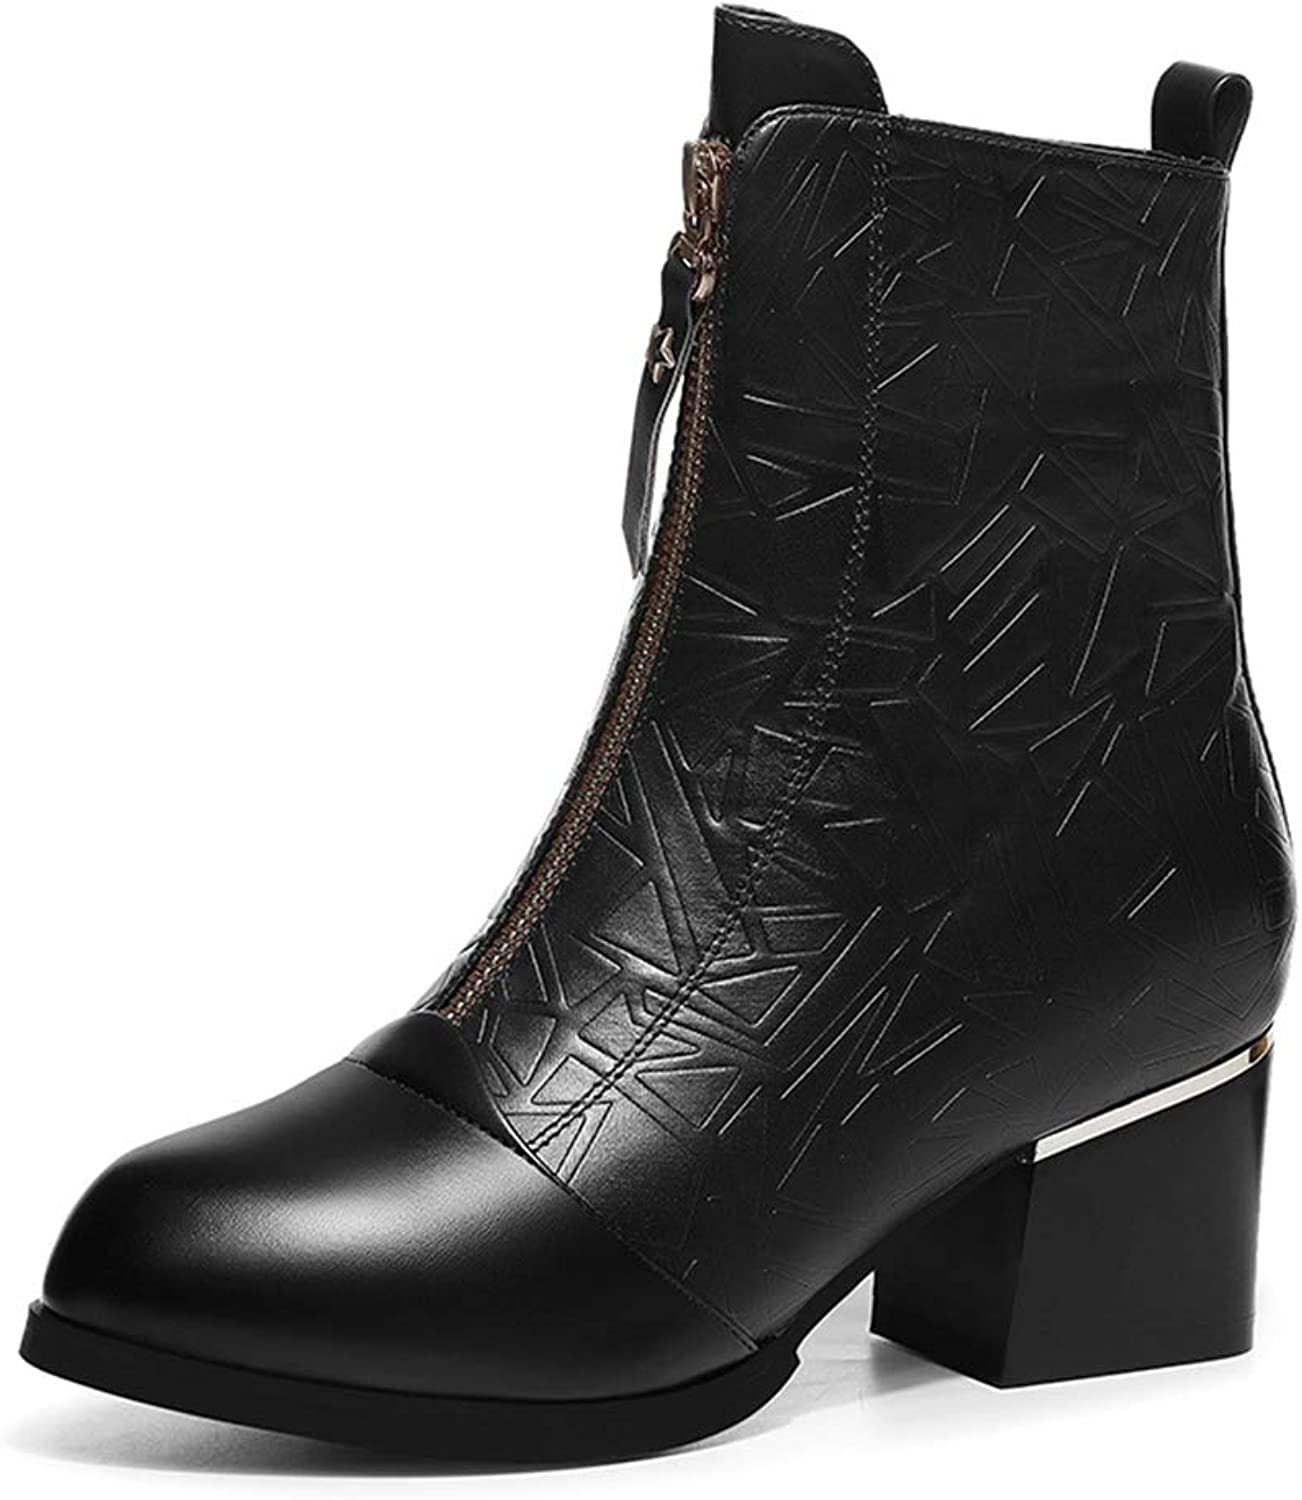 Women's Boots, Autumn Winter New British Style Thick Ankle Boots Lady Martin Boots Plus Velvet shoes (color   A, Size   40)